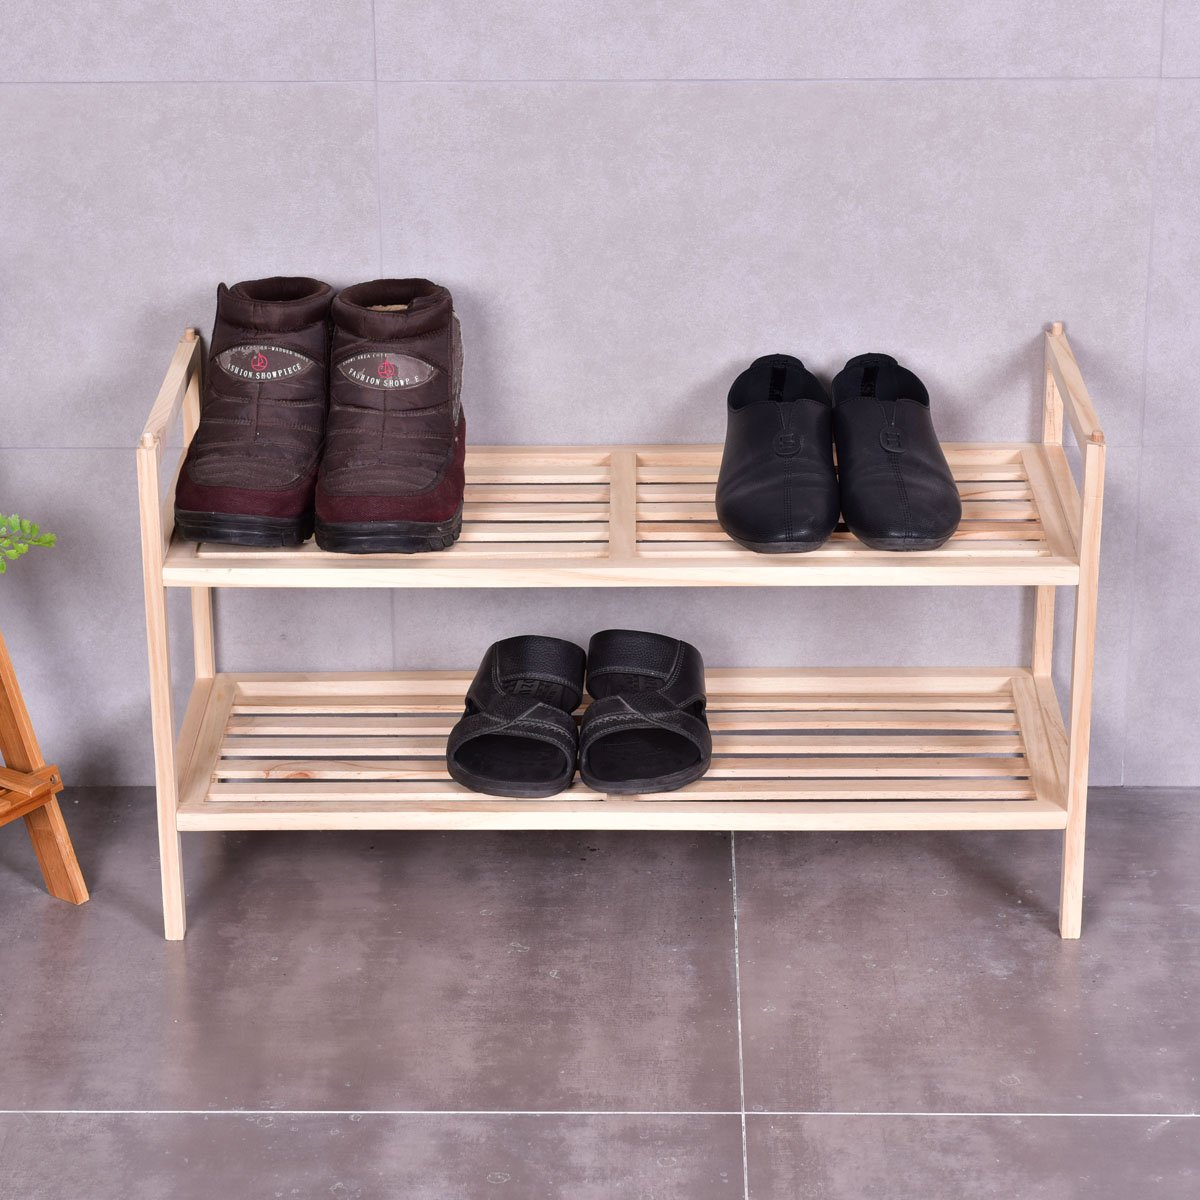 Giantex 2 Tier Solid Wood Shoe Rack Shelf Storage Organizer Wooden Slats Entryway Home by Giantex (Image #3)